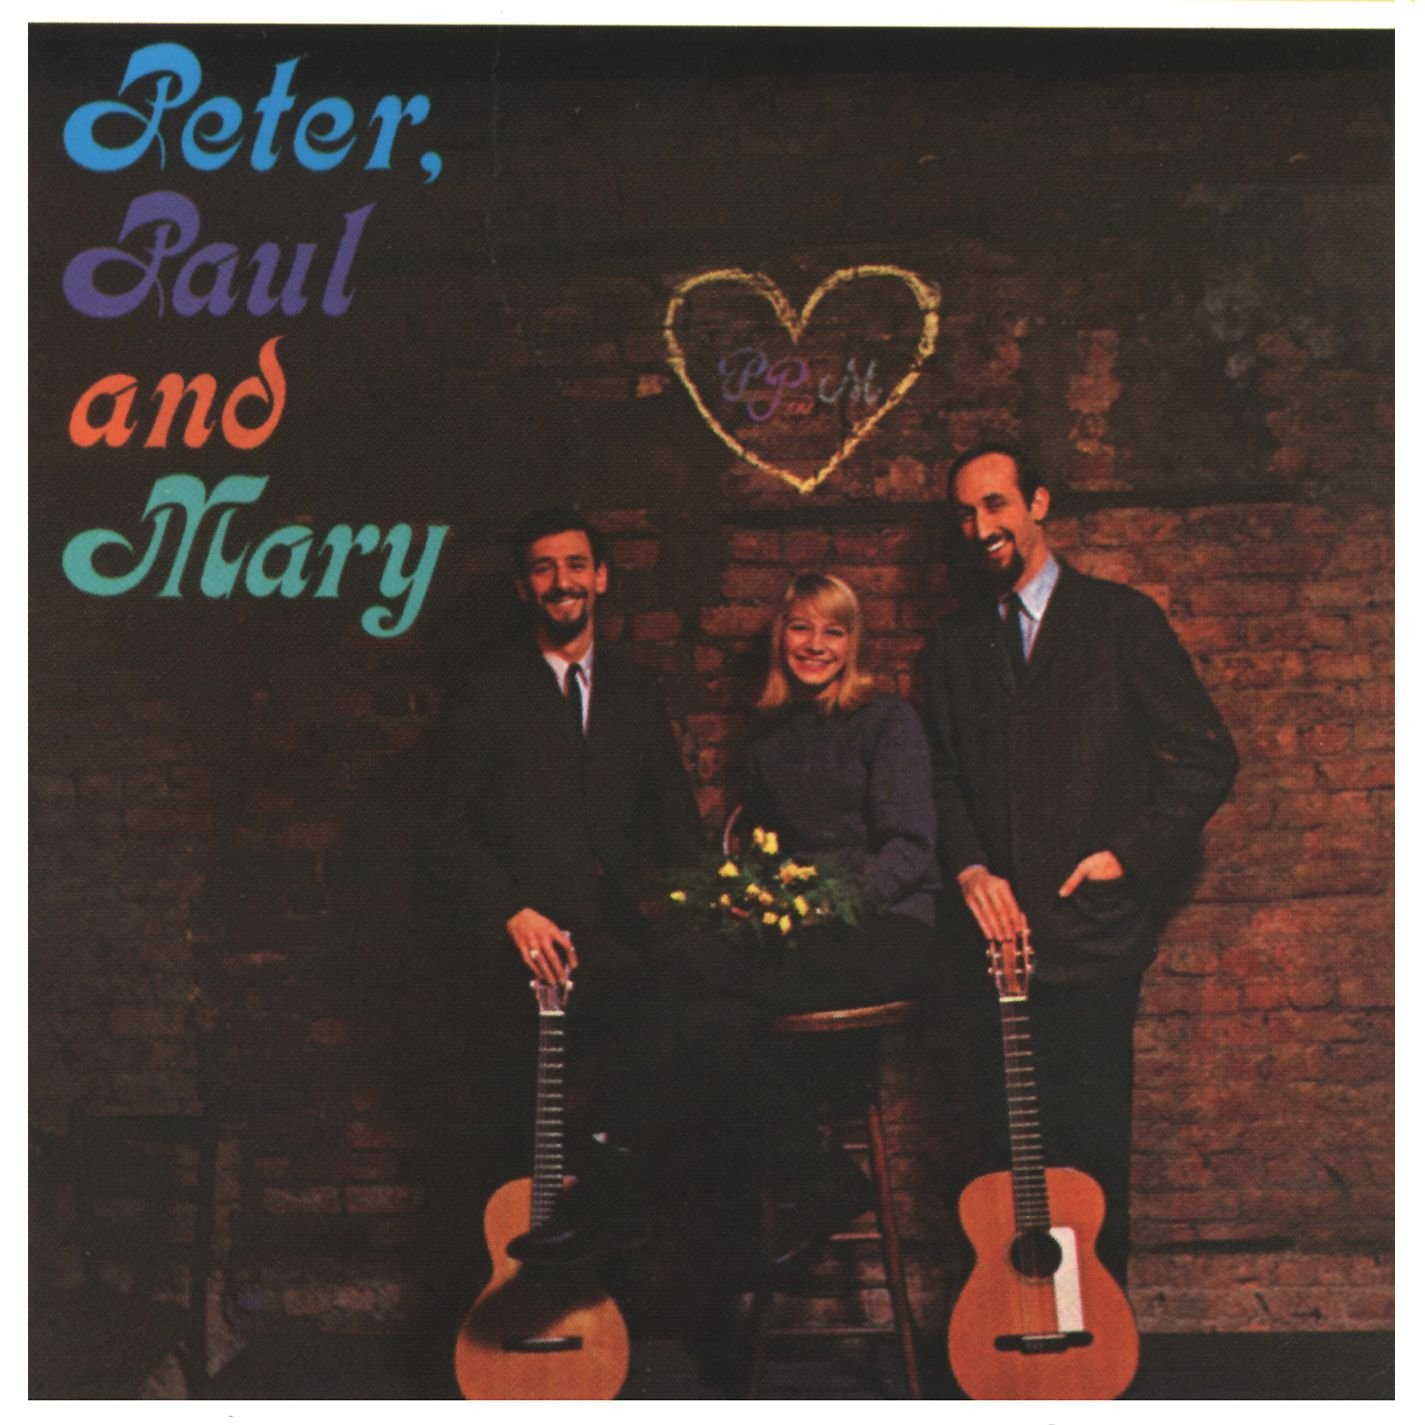 Peter Paul & Mary - Peter, Paul and Mary - Amazon.com Music